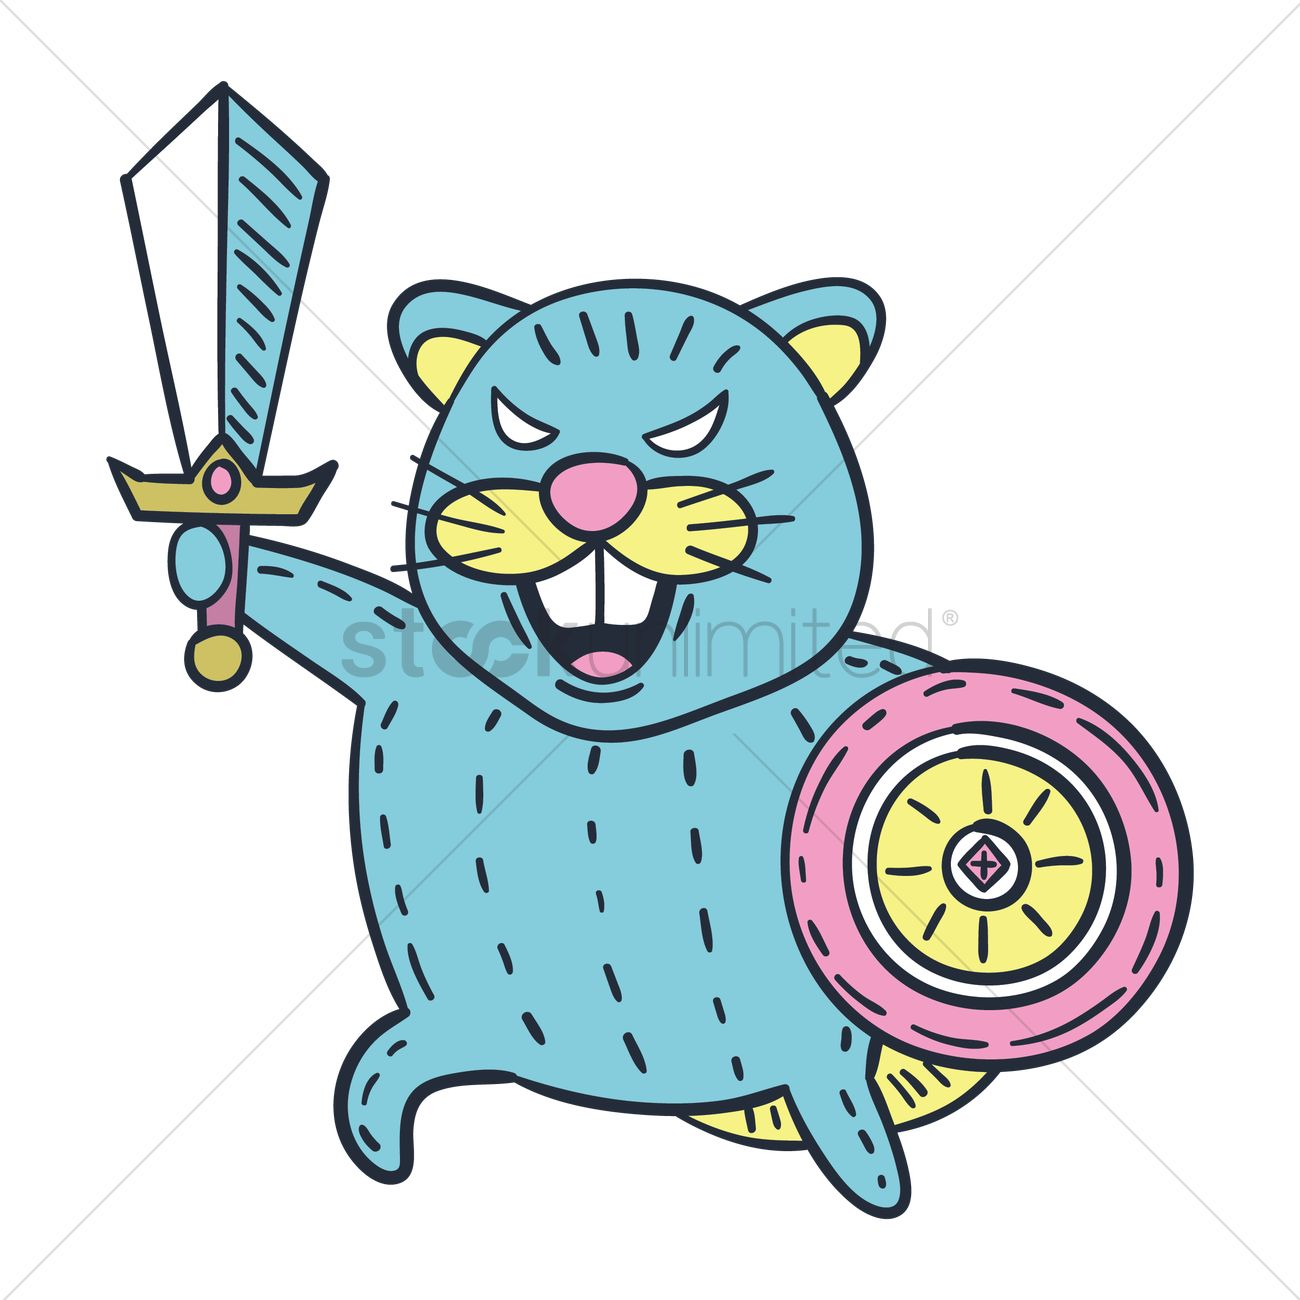 Cartoon beaver with sword and shield Vector Image.